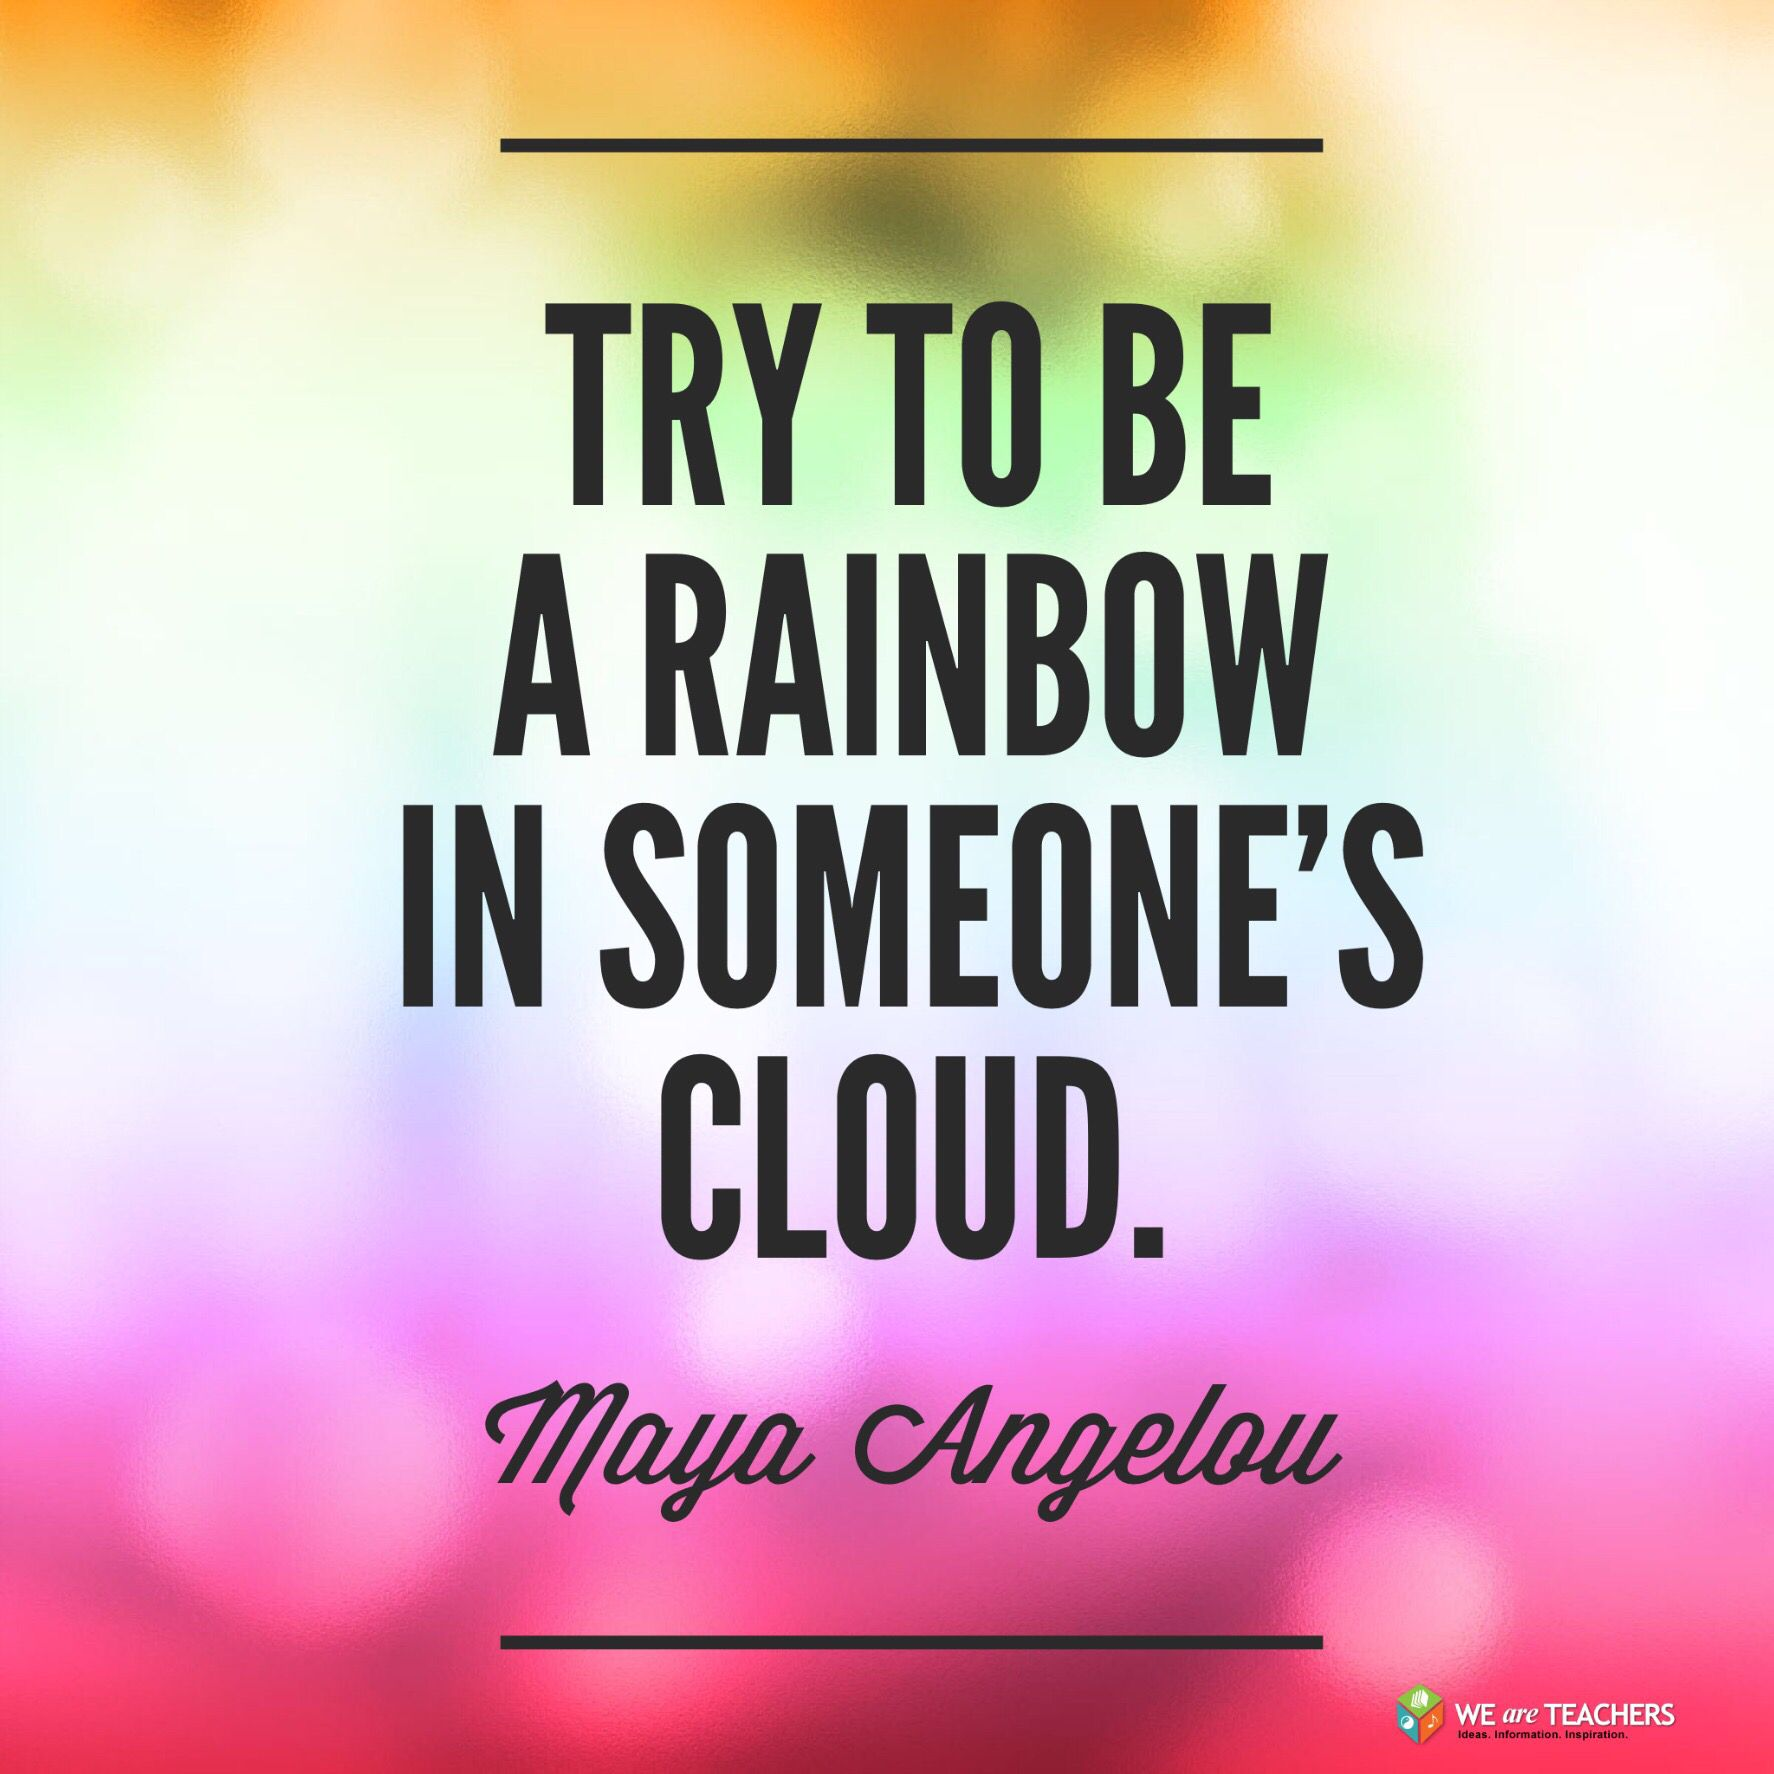 Motivational Inspirational Quotes: Sometimes You're A Rainbow For Your Most Challenging Kids